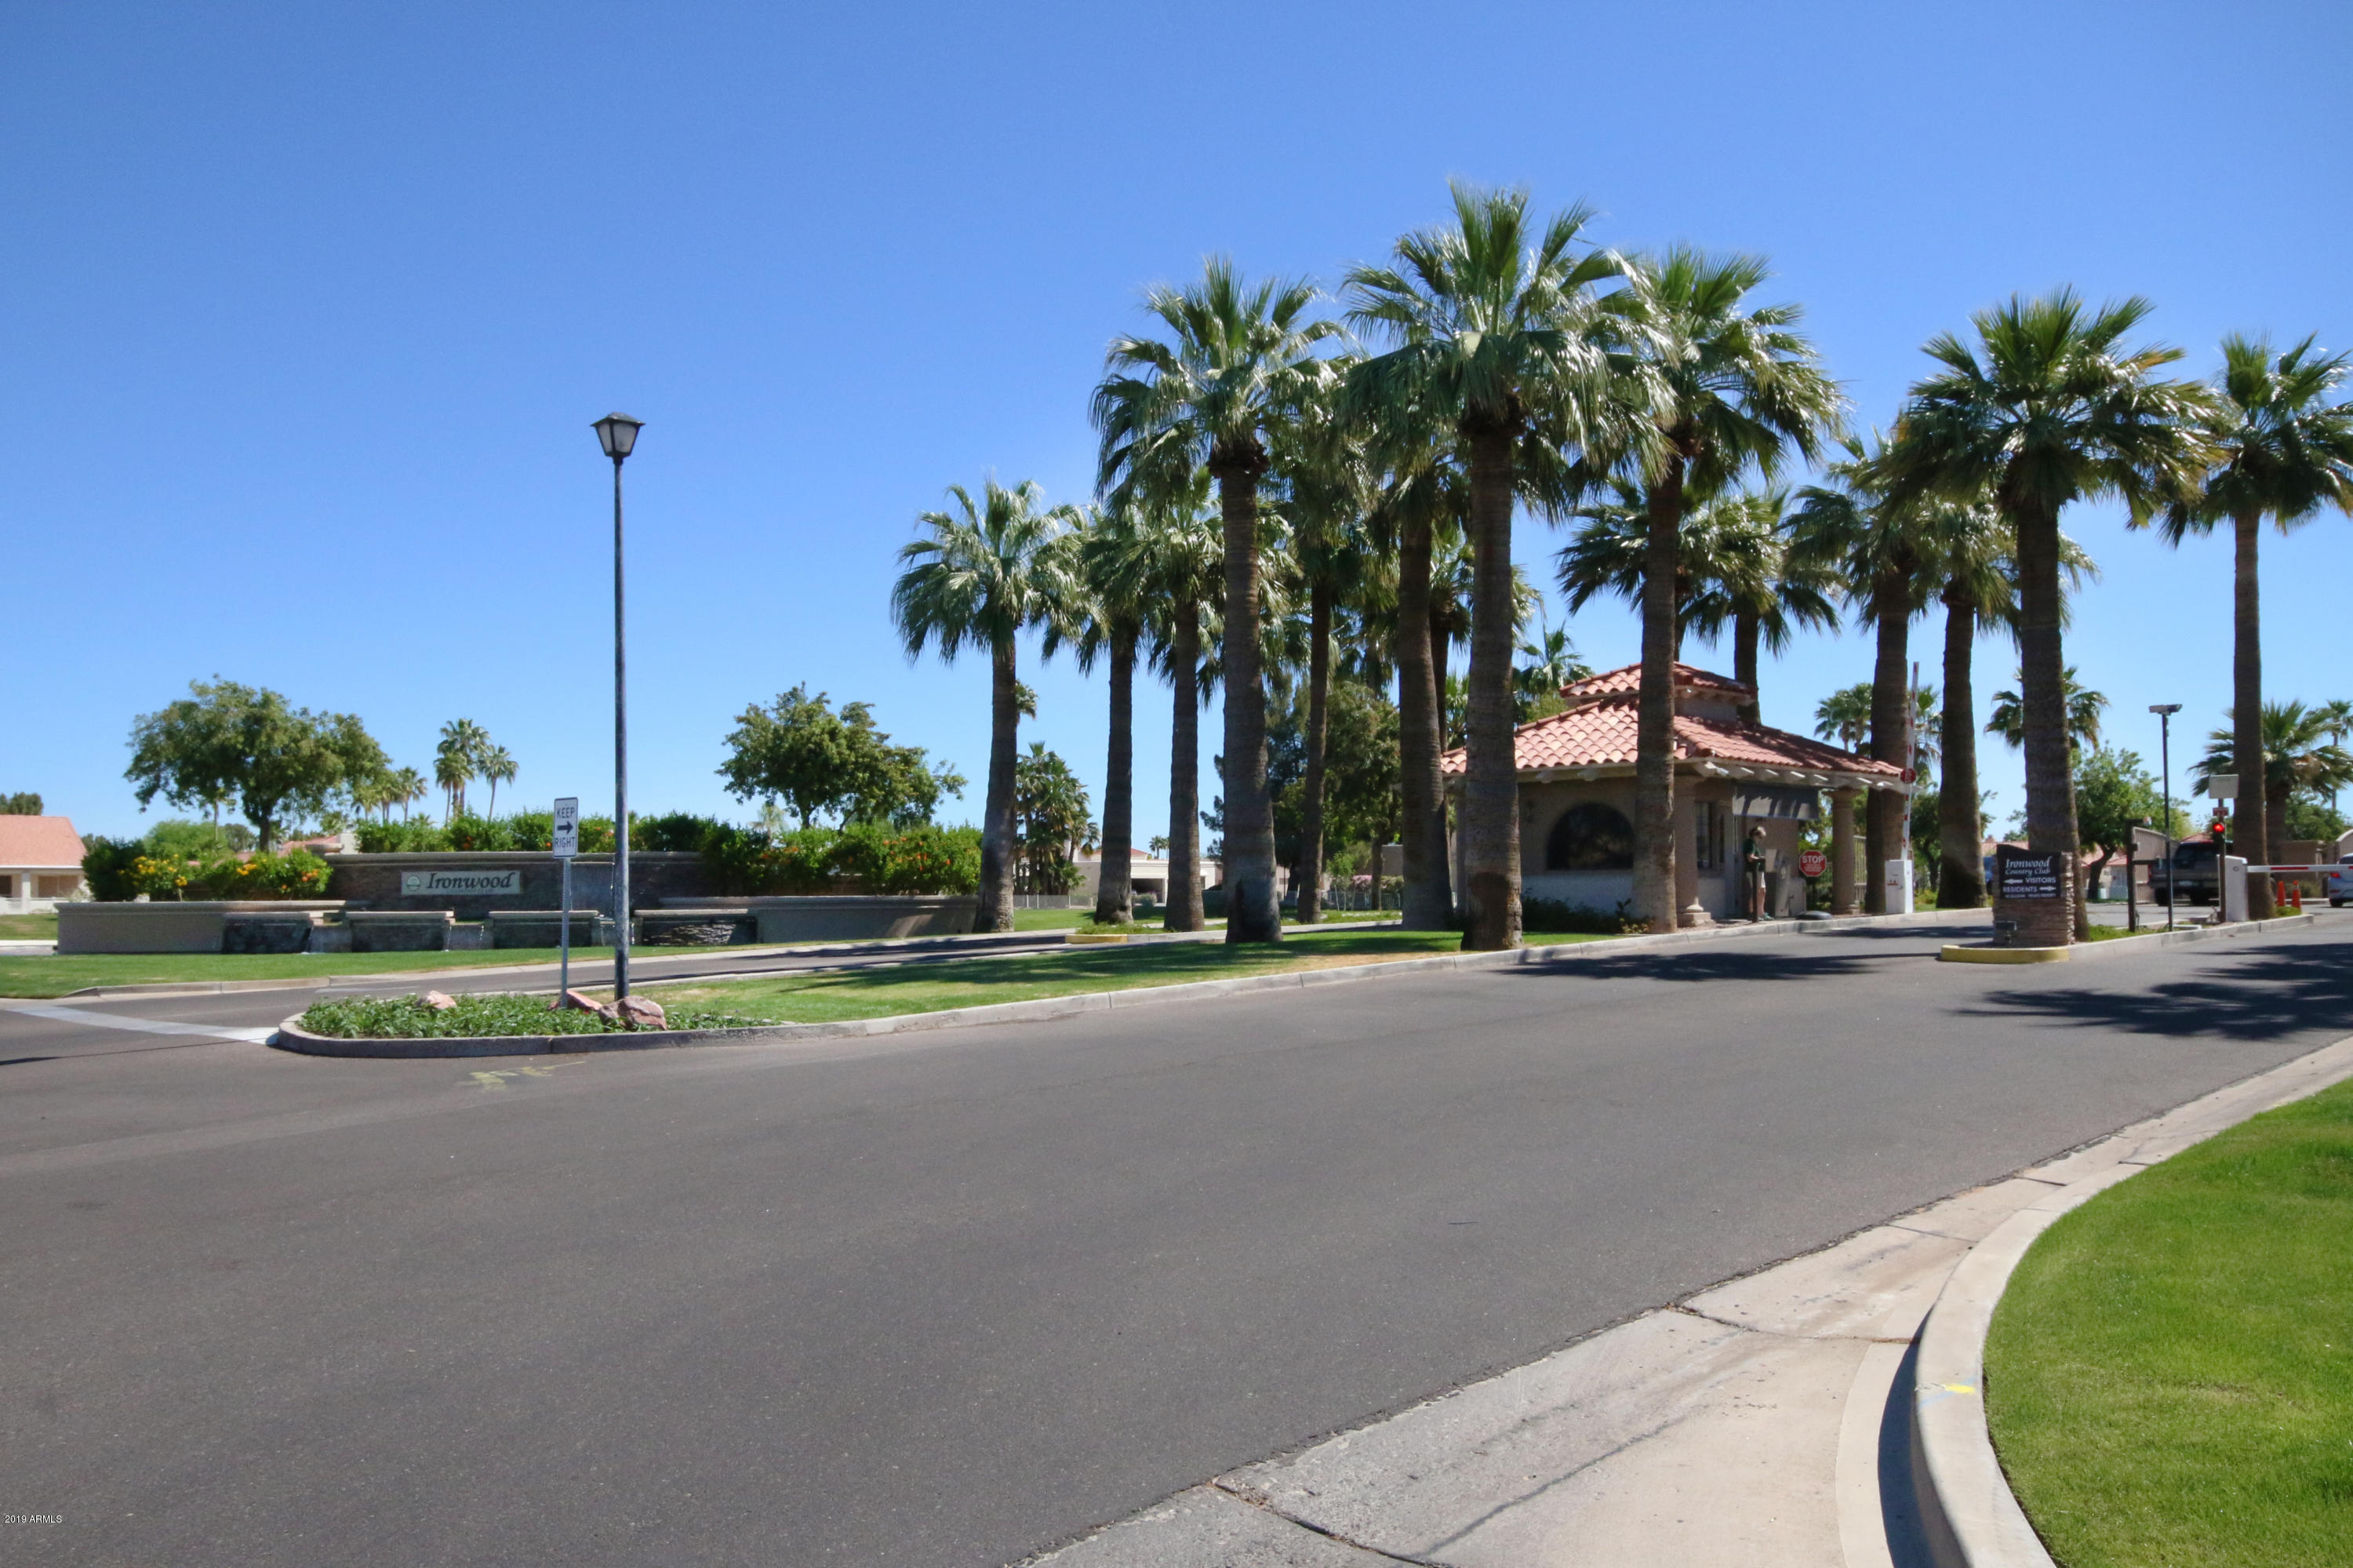 MLS 5887202 5391 S ROCKWOOD Drive, Chandler, AZ 85248 Chandler AZ Condo or Townhome